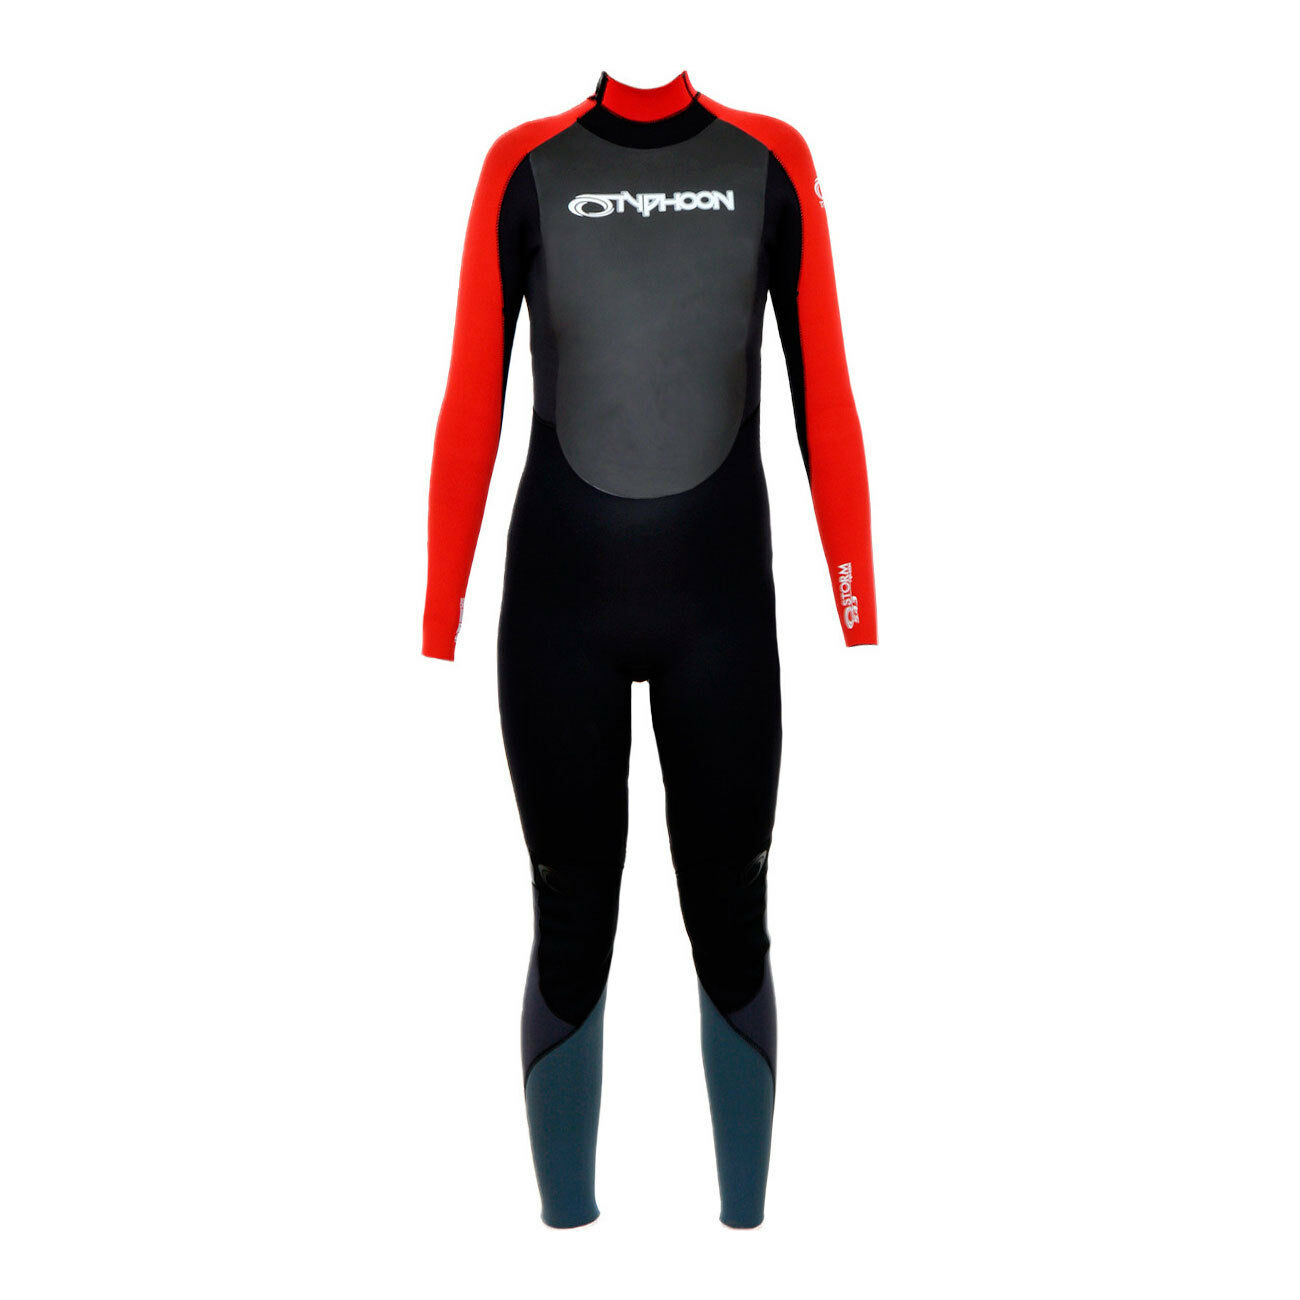 Typhoon Storm Boys 5mm Winter Wetsuit - Red